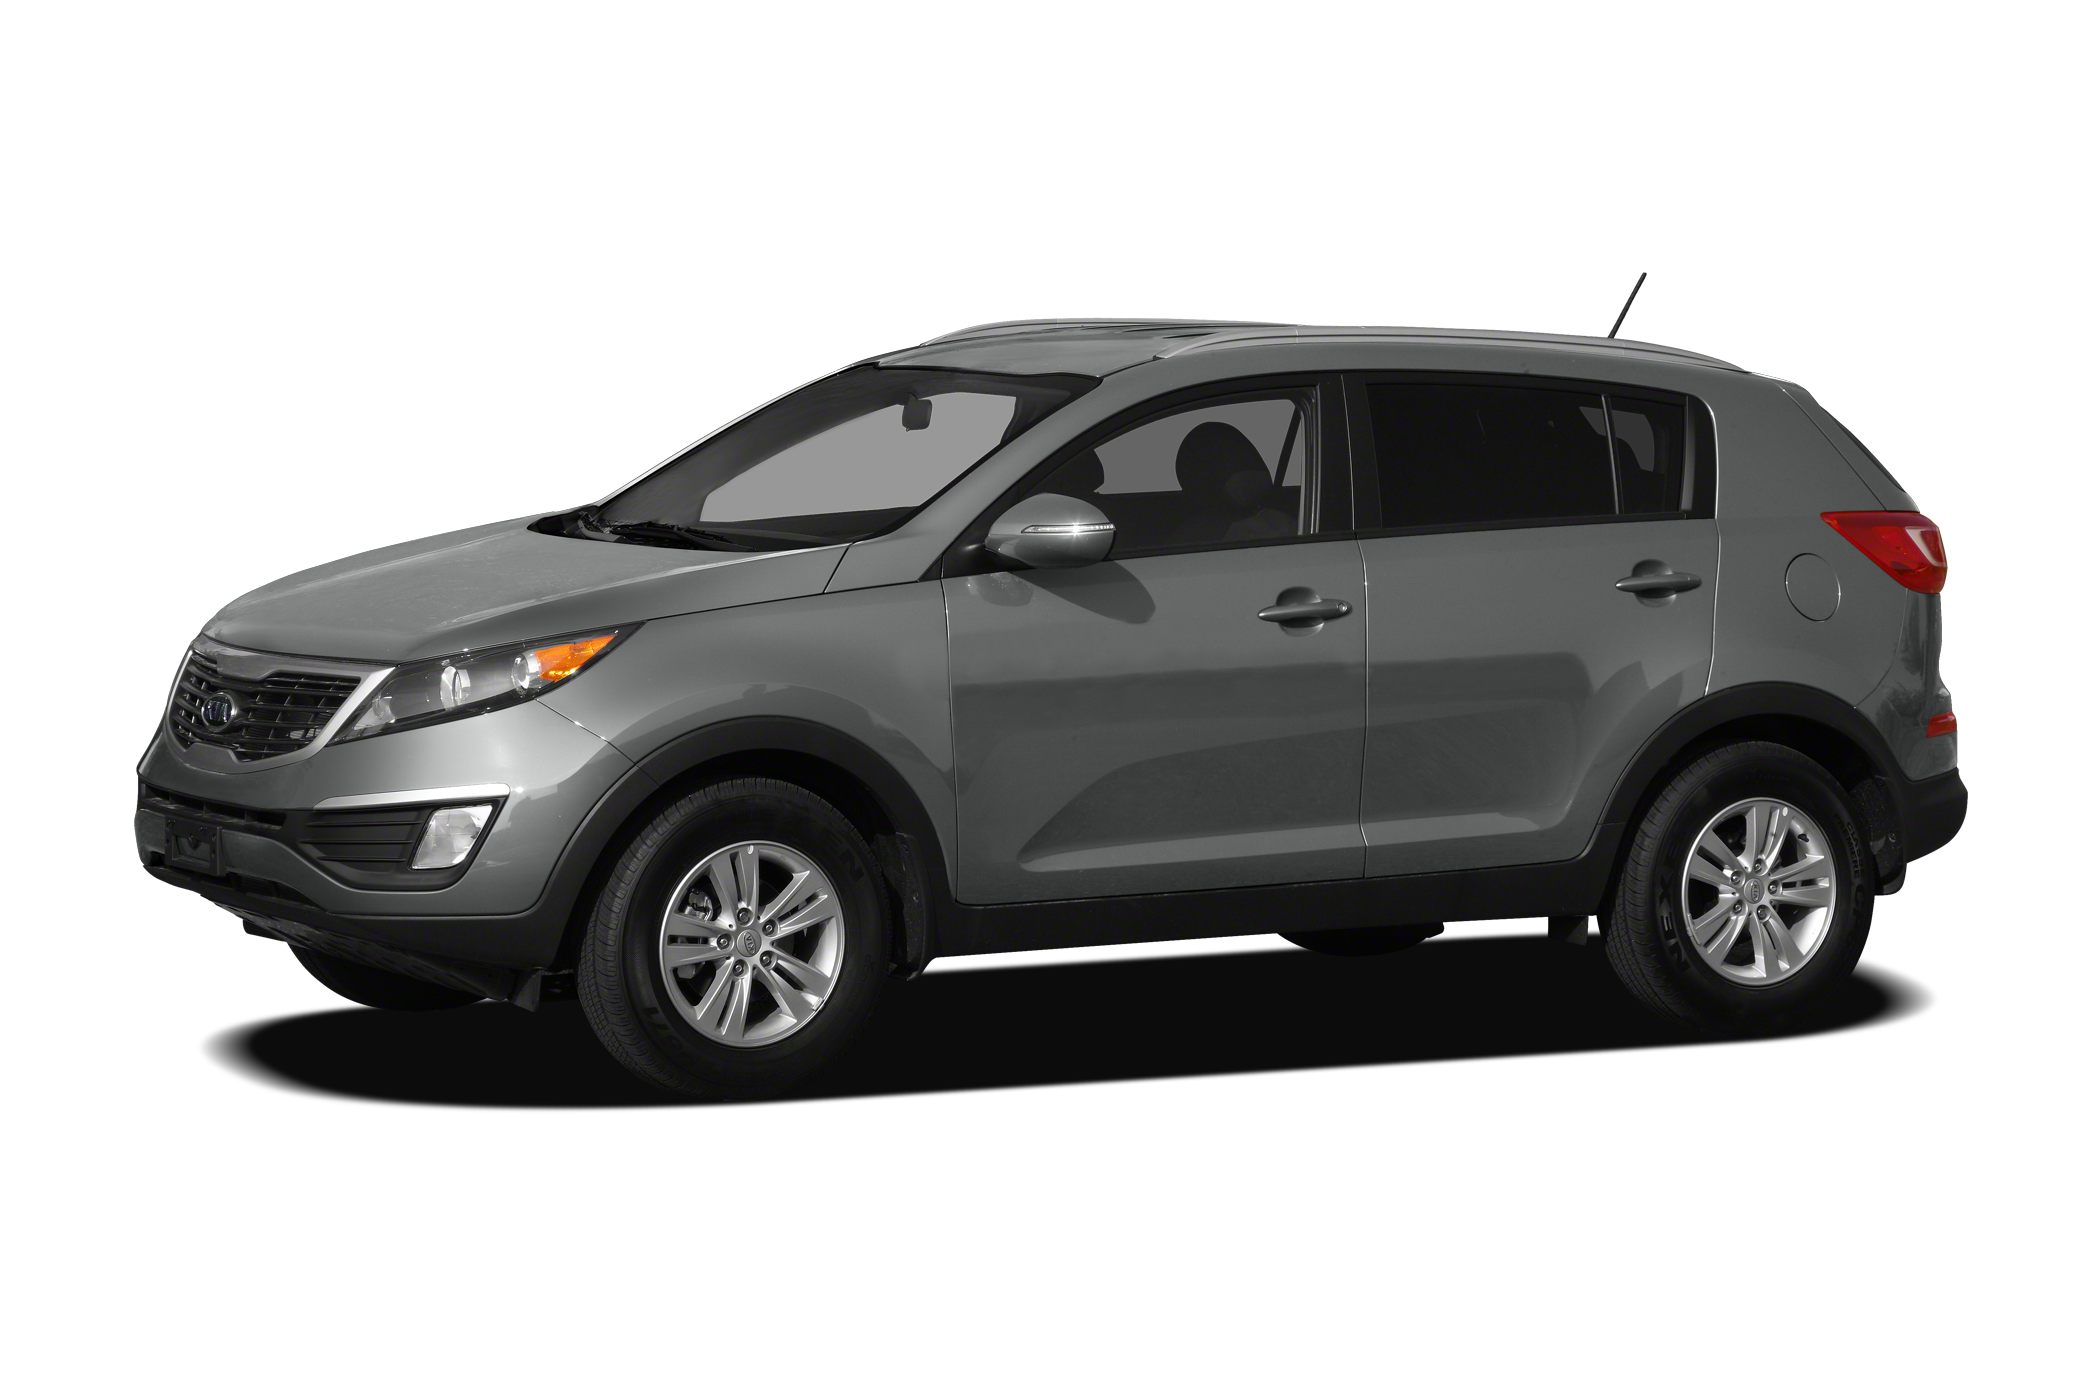 2012 Kia Sportage LX SUV for sale in Ocoee for $13,800 with 63,032 miles.